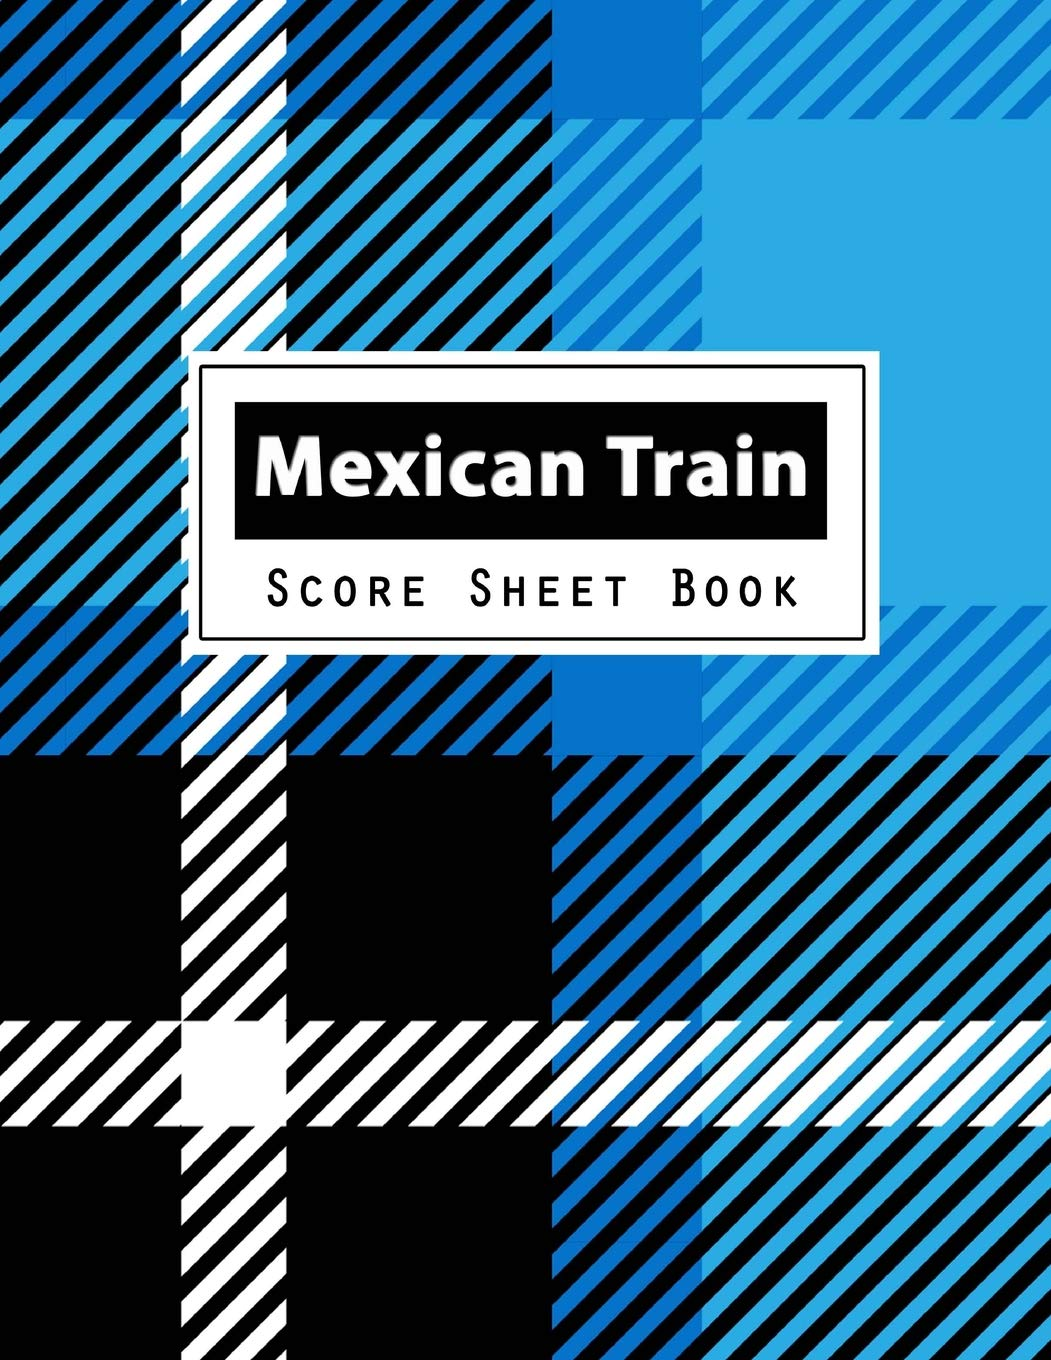 Download Mexican Train Score Sheet Book: Dominoes Mexican Train Dominoes Scoring Game Record Level Keeper Book, Mexican Train Score, Track their scores on this ... Scoresheet, Size 8.5 x 11 Inch, 100 Pages PDF